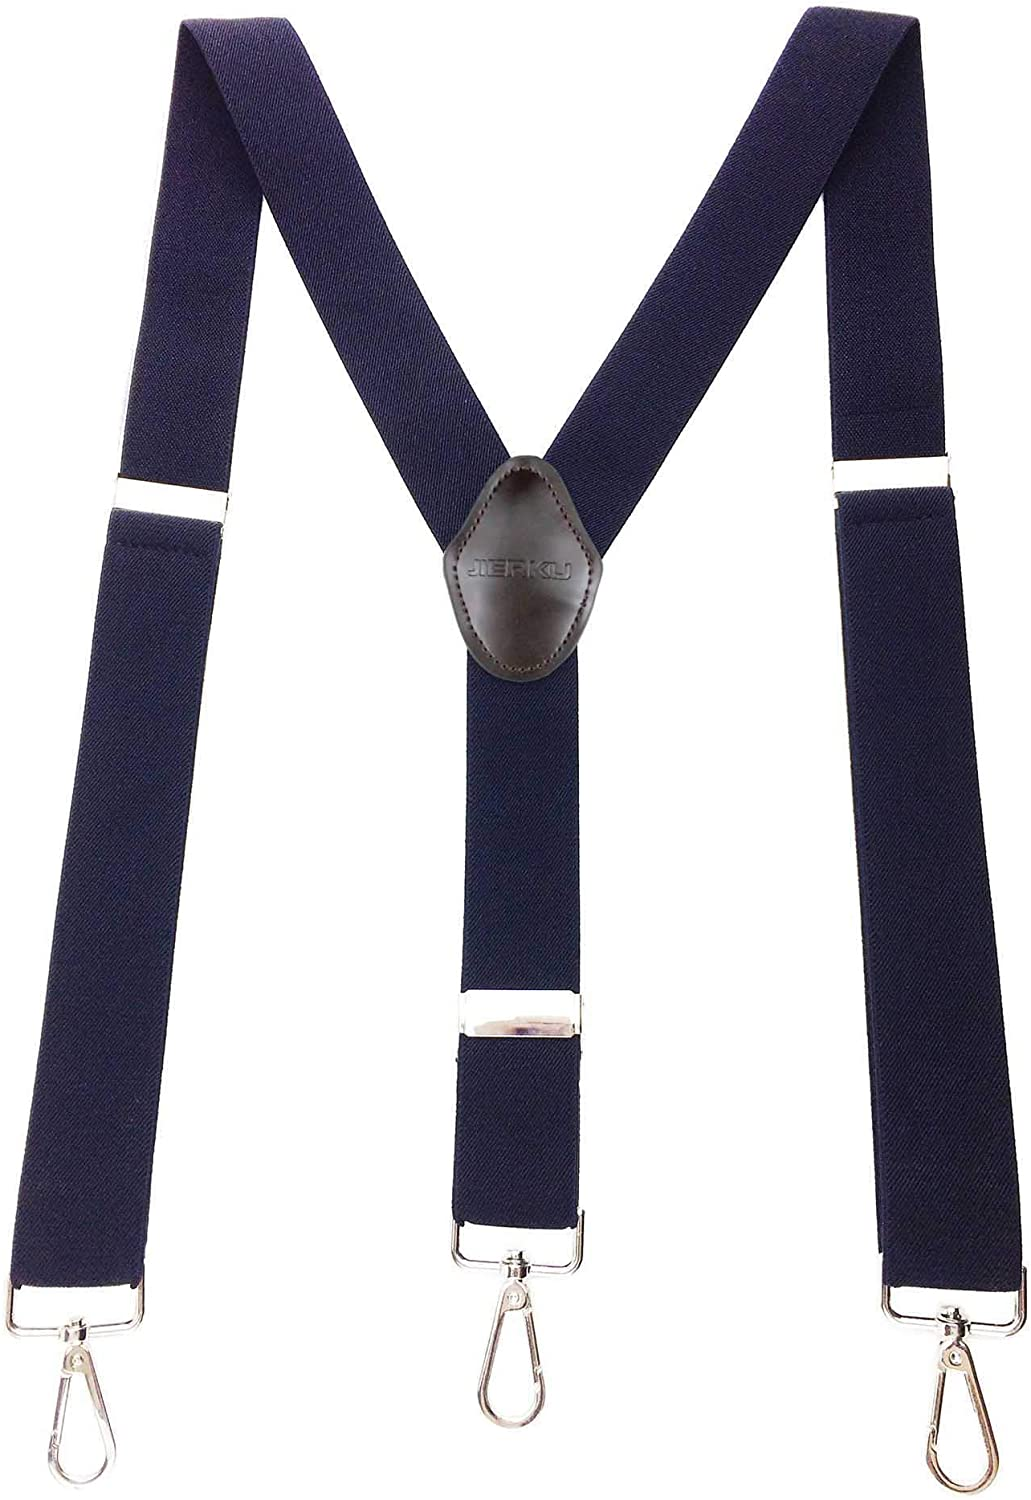 Romanlin Suspenders for Men Long We OFFer at cheap prices Beach Mall with 3 Clips Hooks Heavy Adjustable